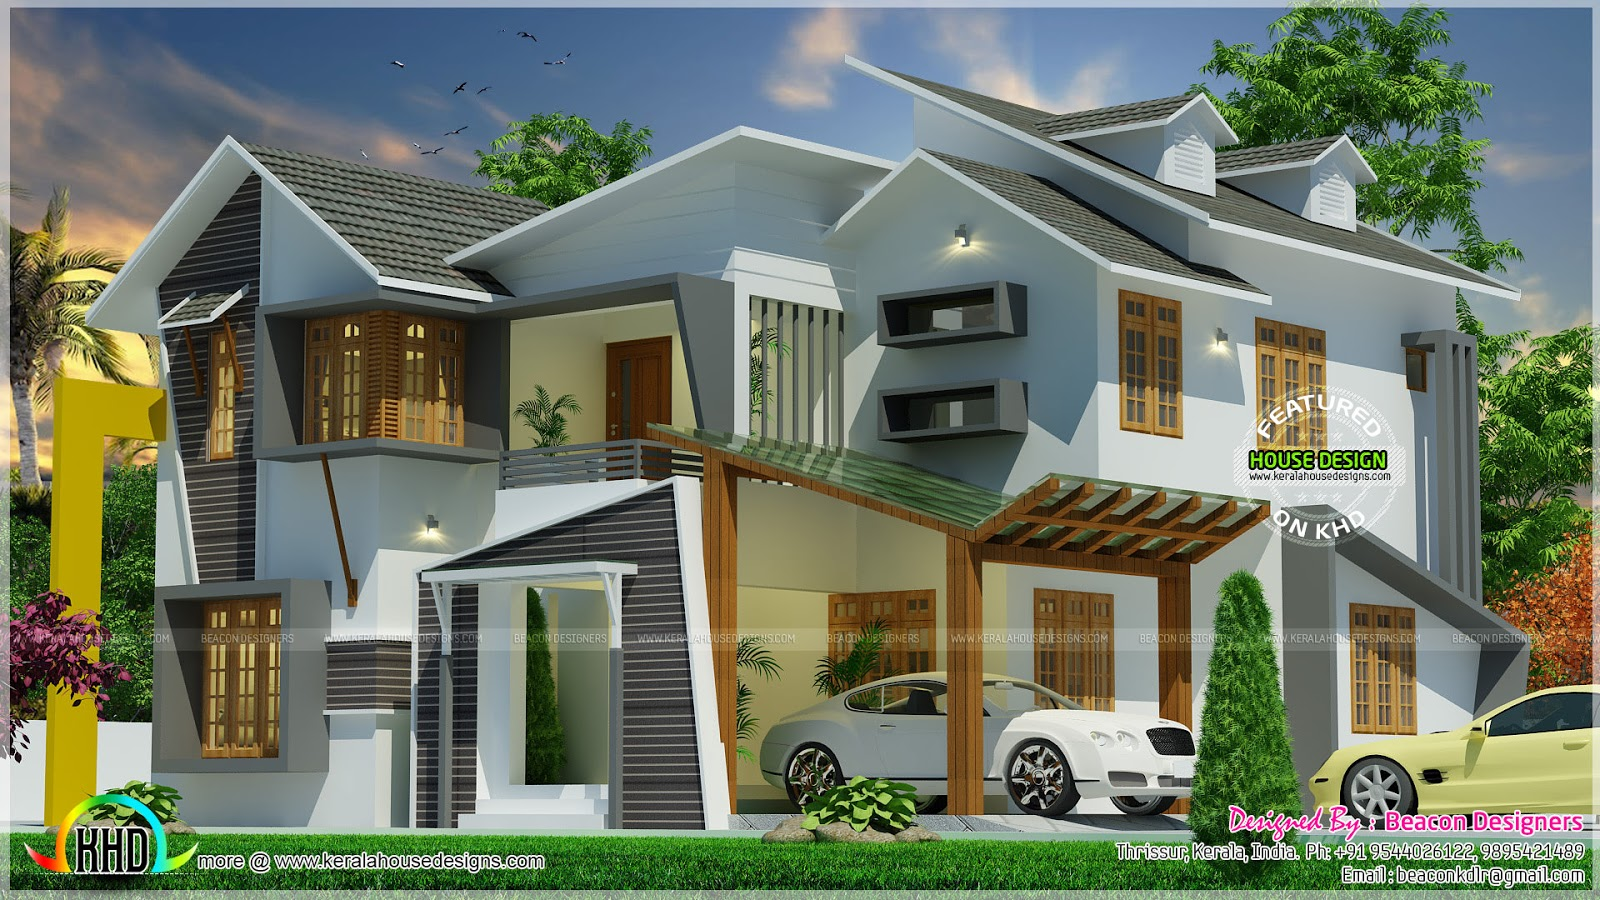 Ultra modern home with dormer windows kerala home design for Ultra modern house plans